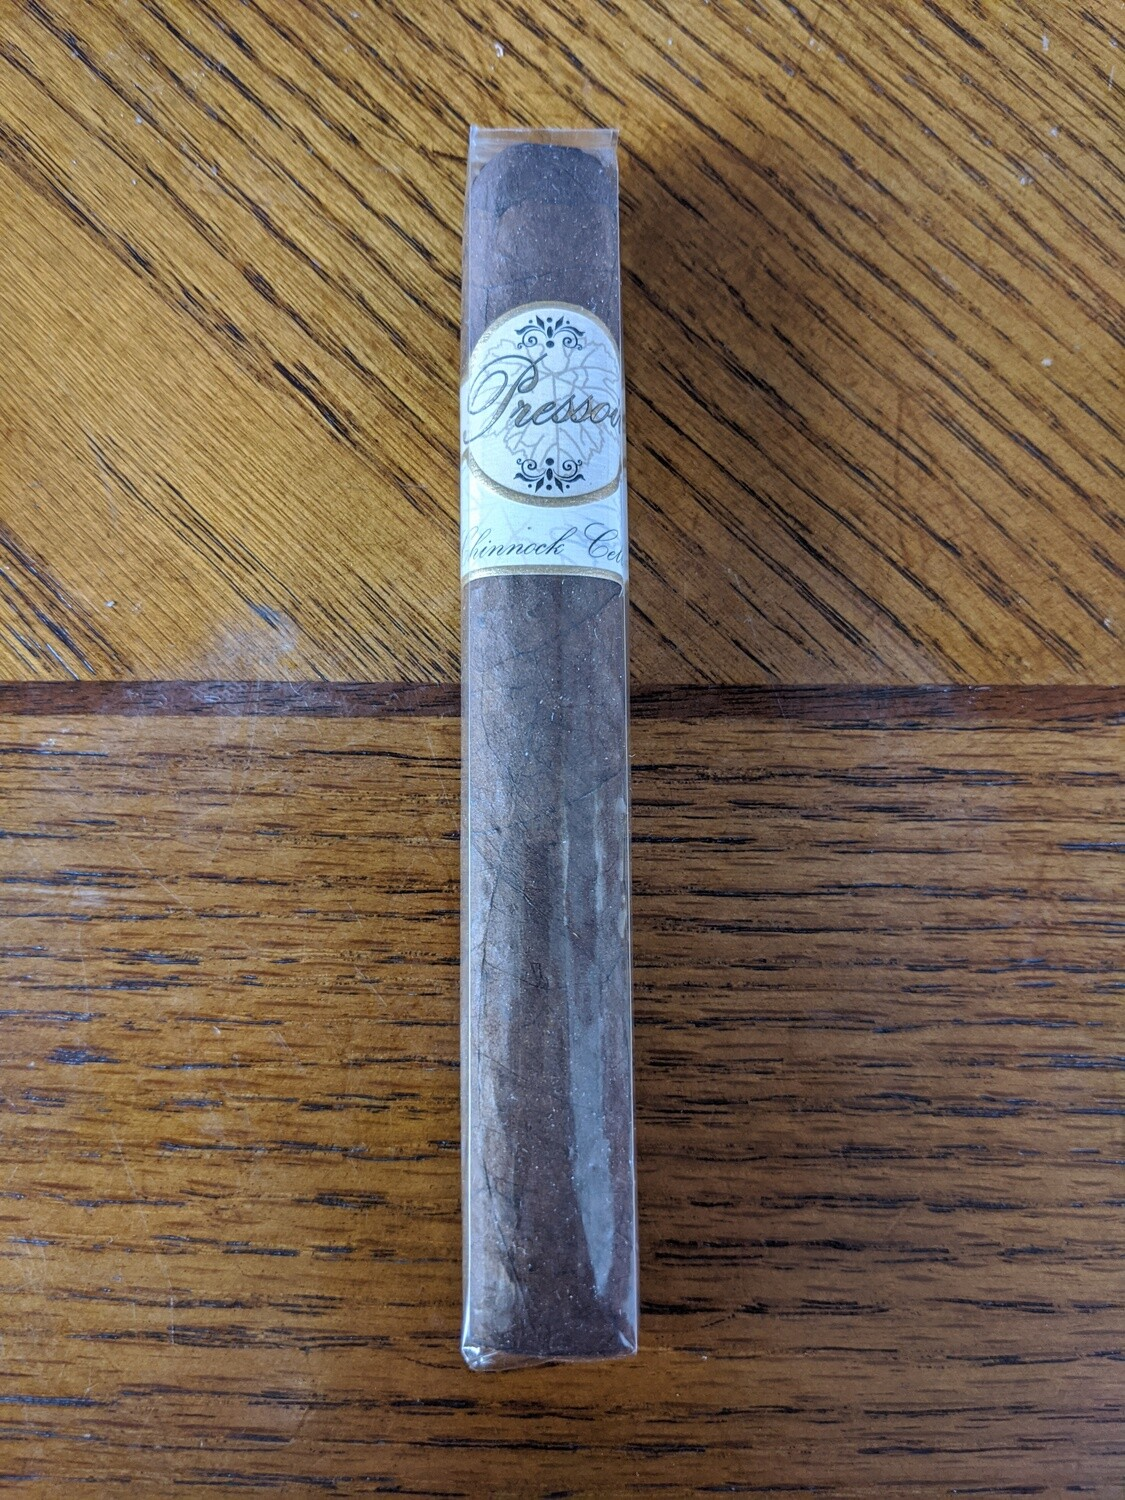 Chinnock Cellars Pressoir Primo Toro Single Cigar